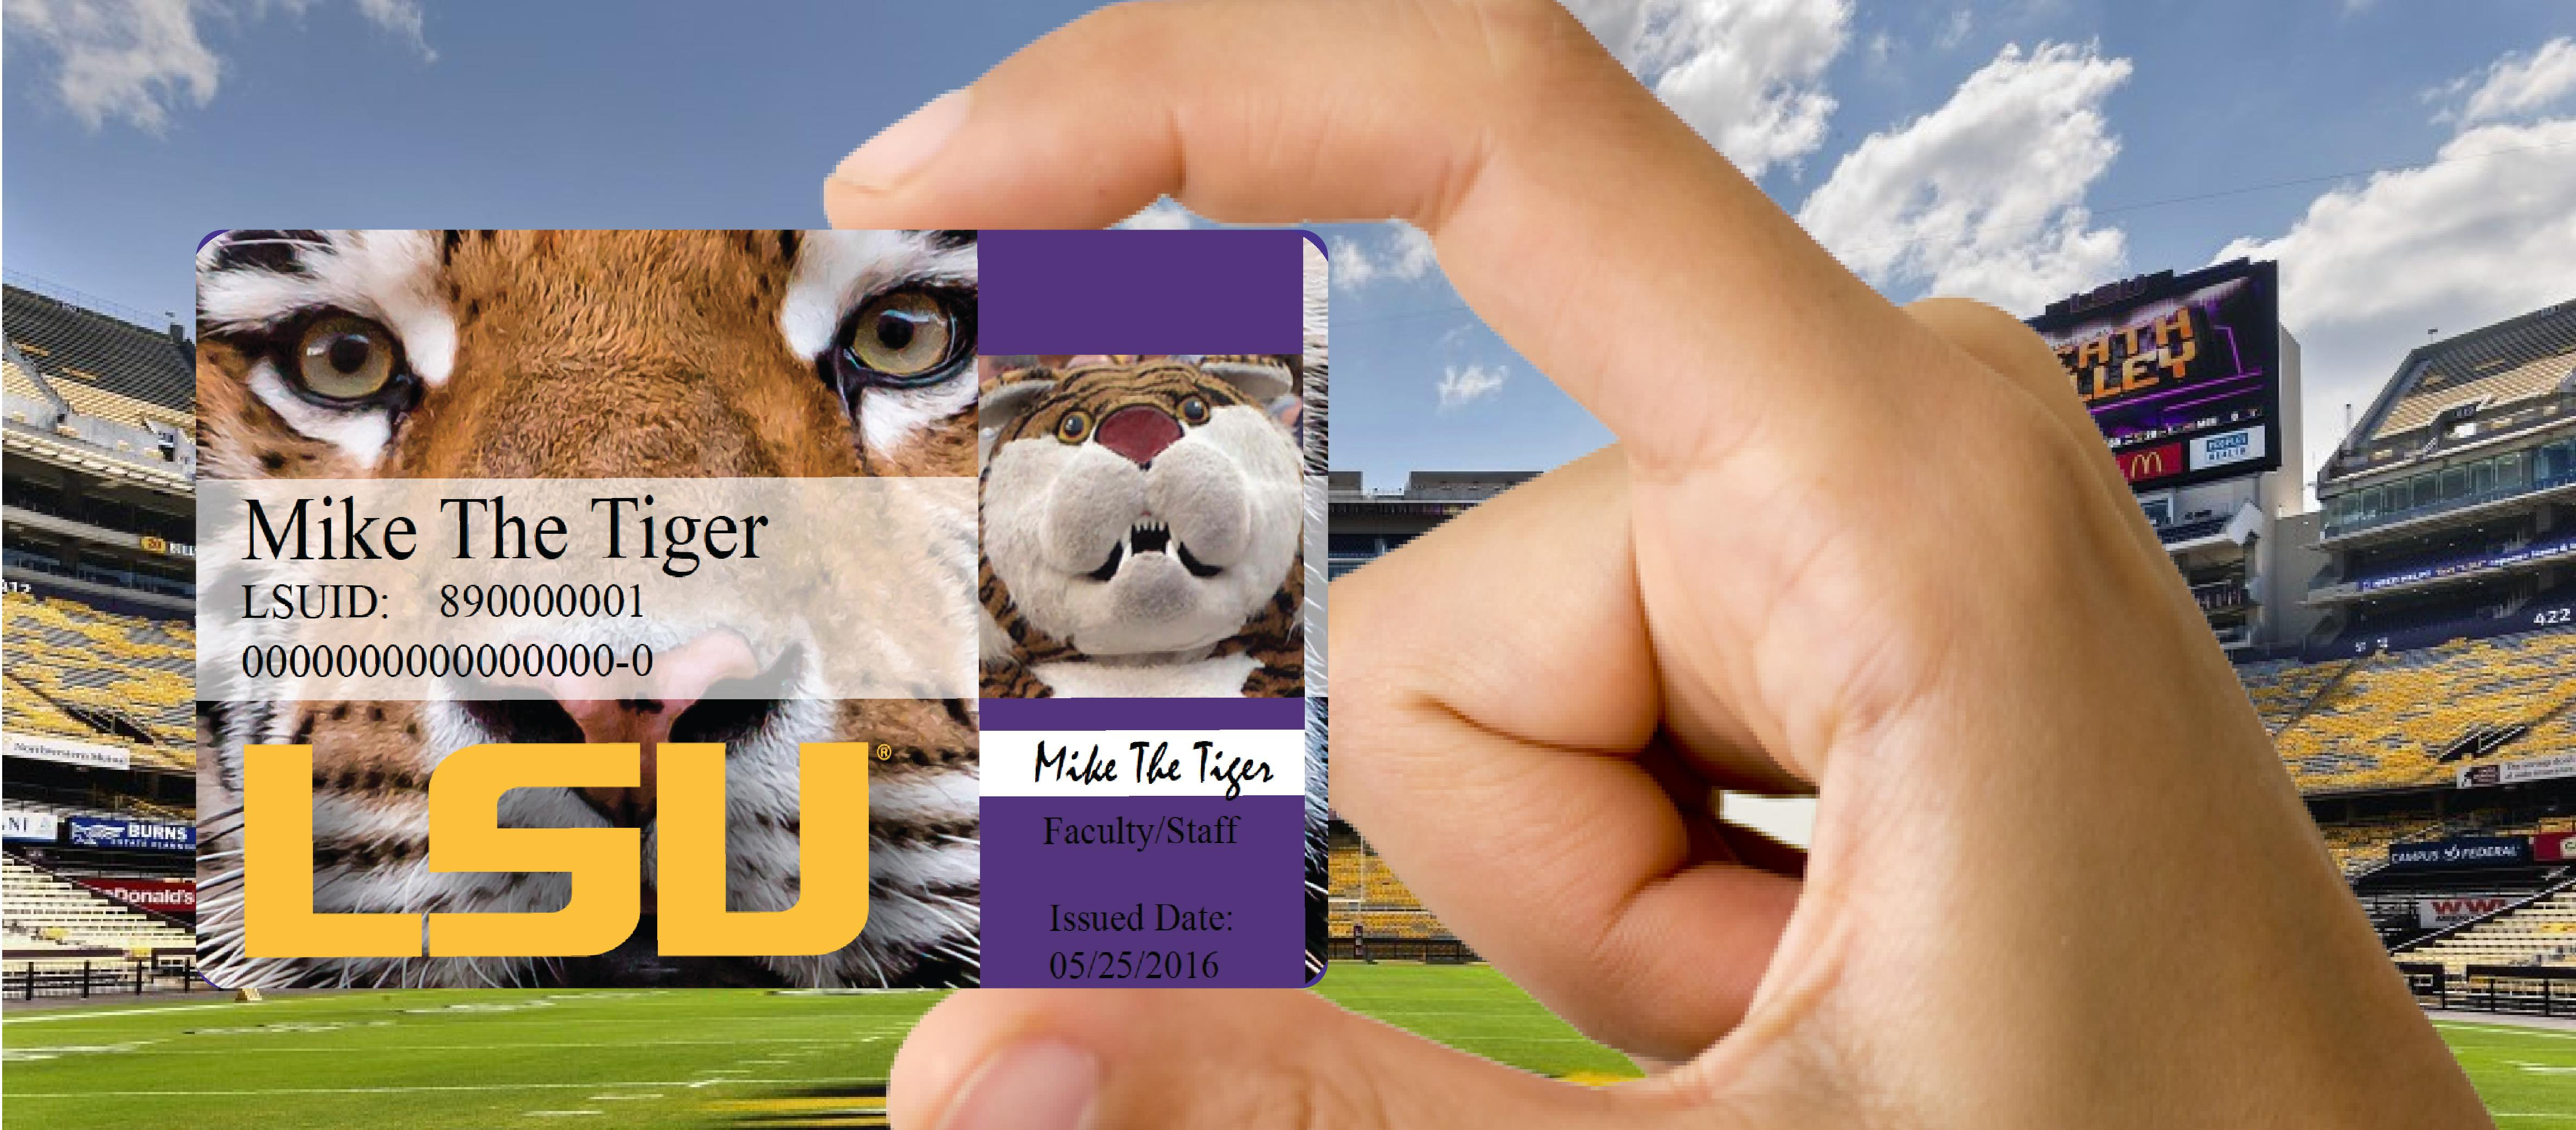 photo: student holding tigercard in Tiger Stadium